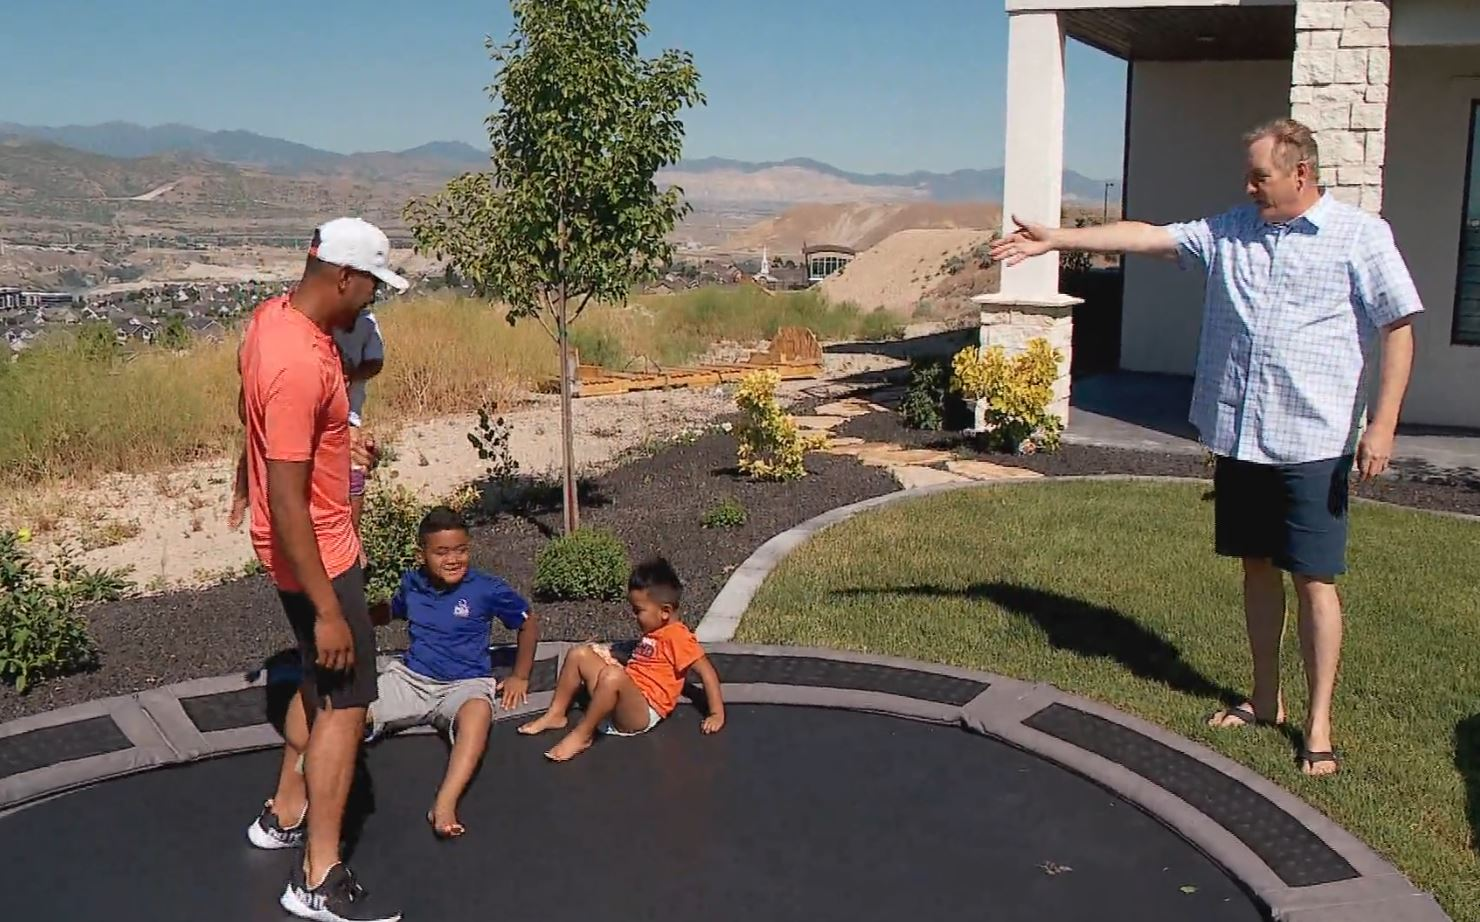 Utah's own PGA Pro Tony Finau is coming off a top 5 finish at the U.S. Open and has found a balance between his professional life, his family and his foundation.  (Photo: Kurt Smith / KUTV)<p></p>